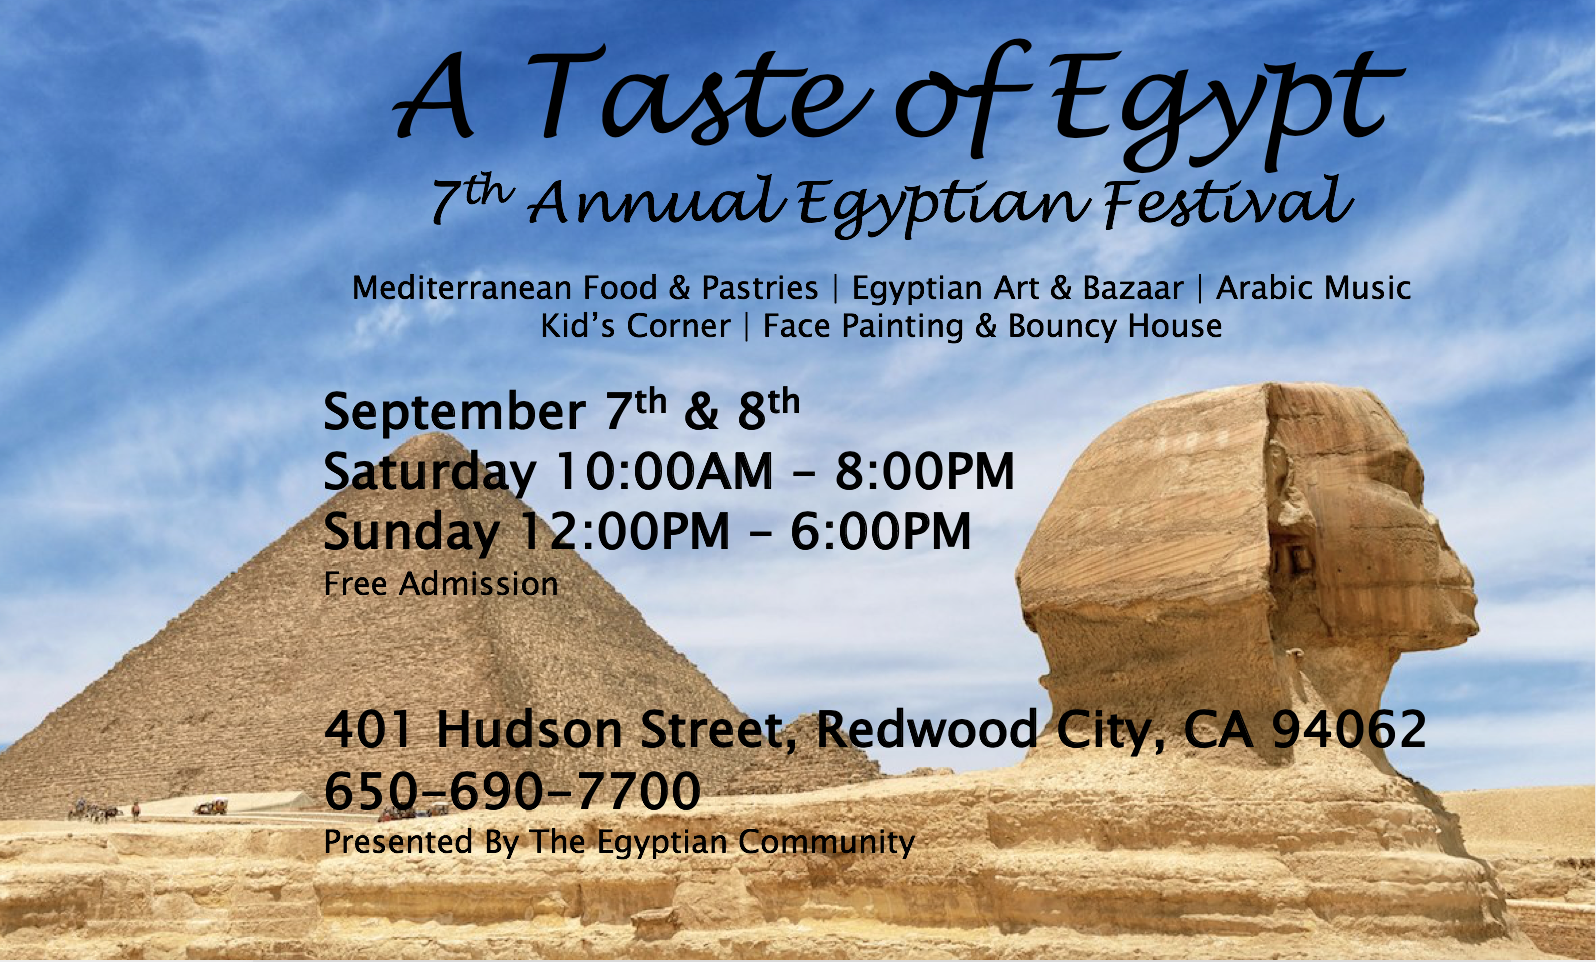 A Taste of Egypt - September 7-8Redwood CityLive Music, Great food and desserts, Bazaar, Redwood City Fire Truck tour and much more!